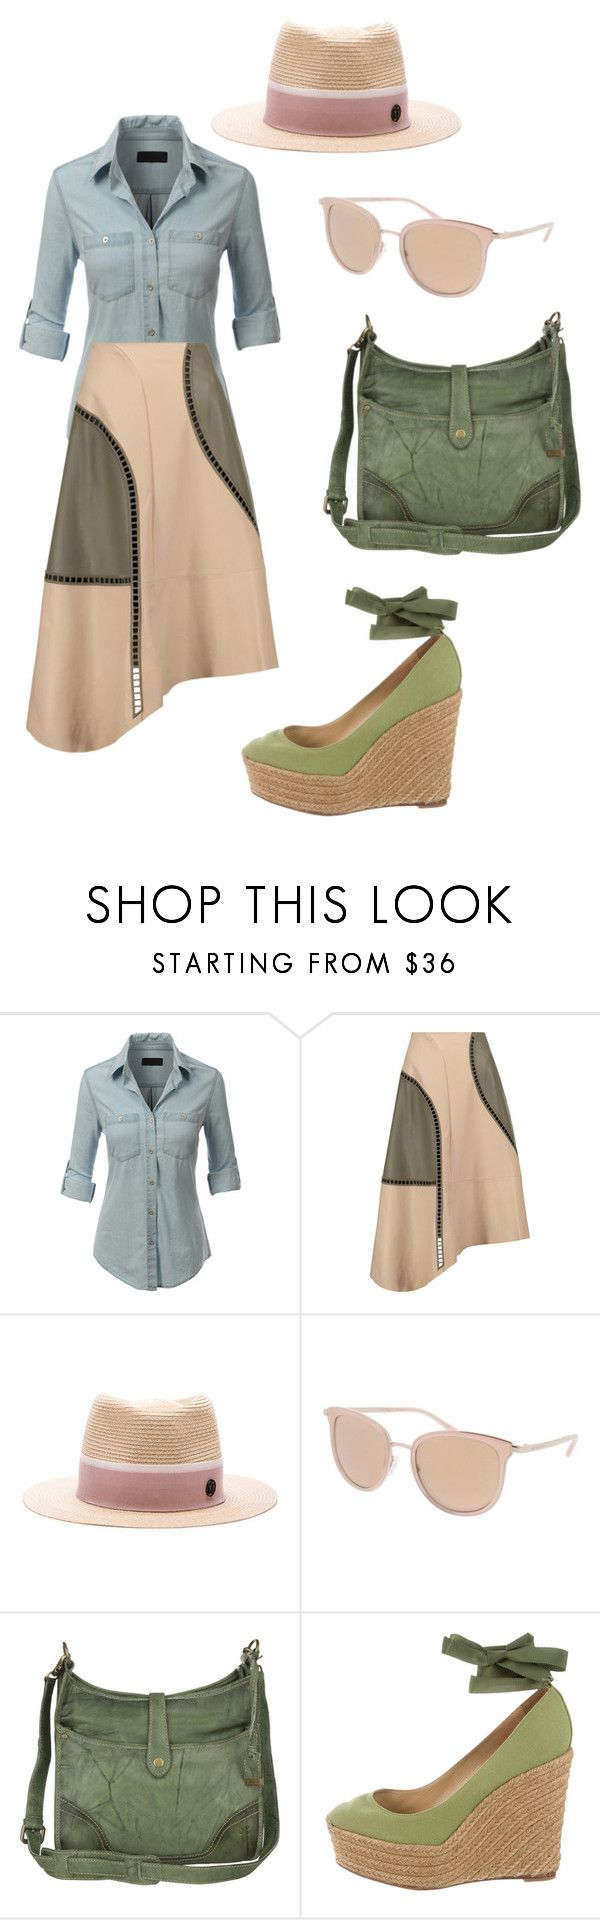 """Сафари"" by evavendoc on Polyvore featuring мода, LE3NO, TIBI, Maison Michel, Michael Kors, Frye и Christian Louboutin"